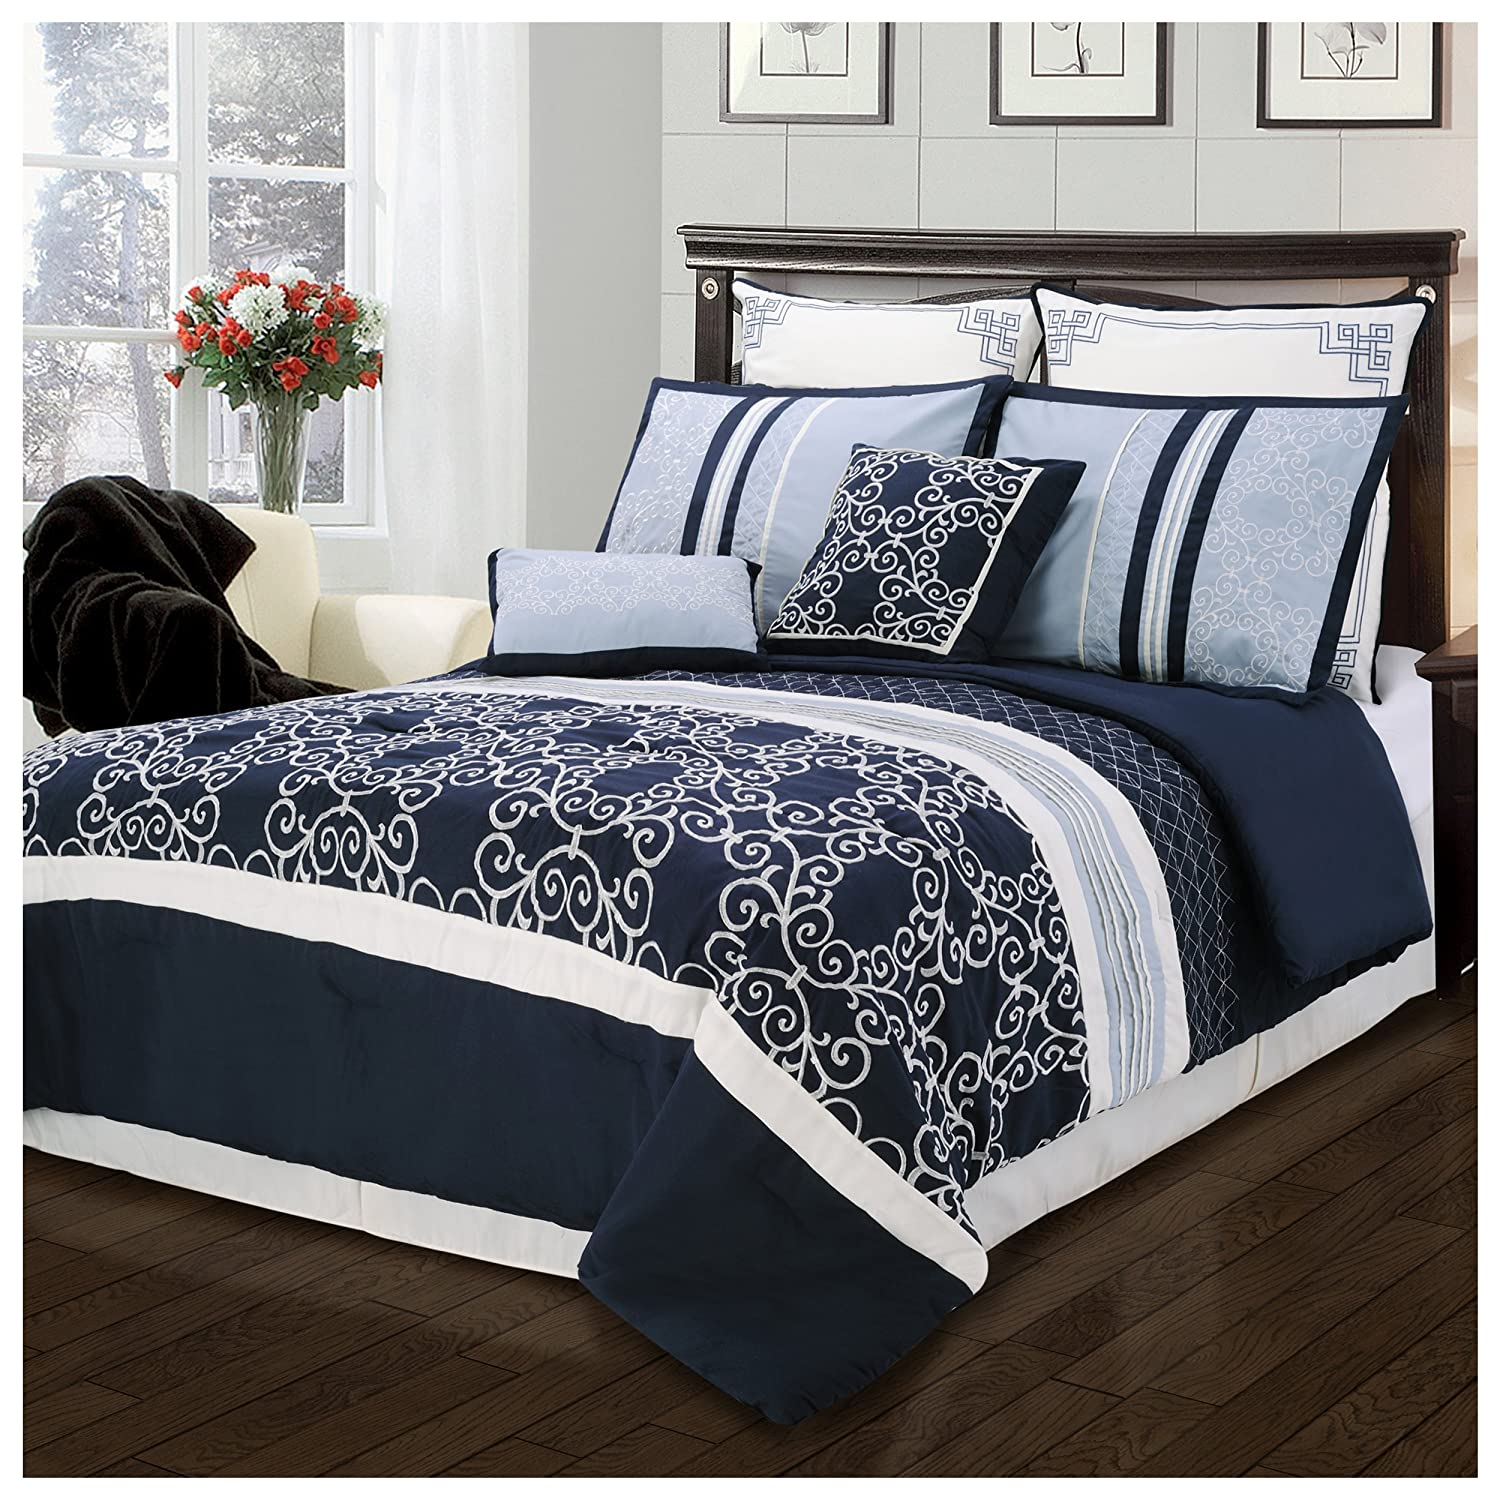 Superior Clarissa 8 Piece Embroidered and Pin-Tucked Comforter Set California King Blue CLARISSA 8PC CKBL